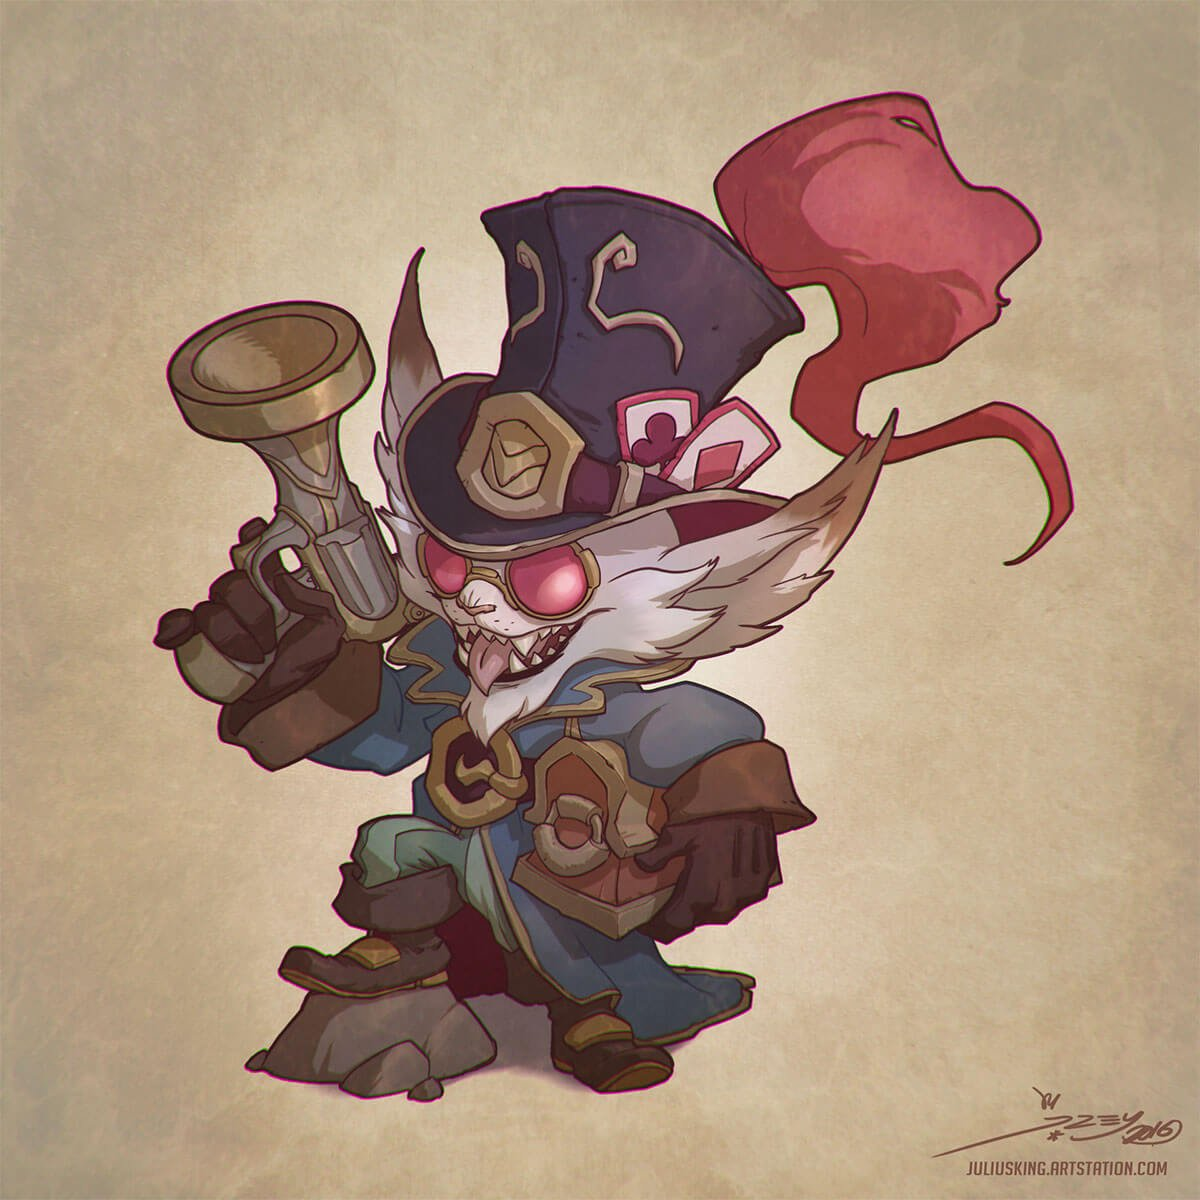 FERDO THE FURRY BANDIT by Julian del Rey